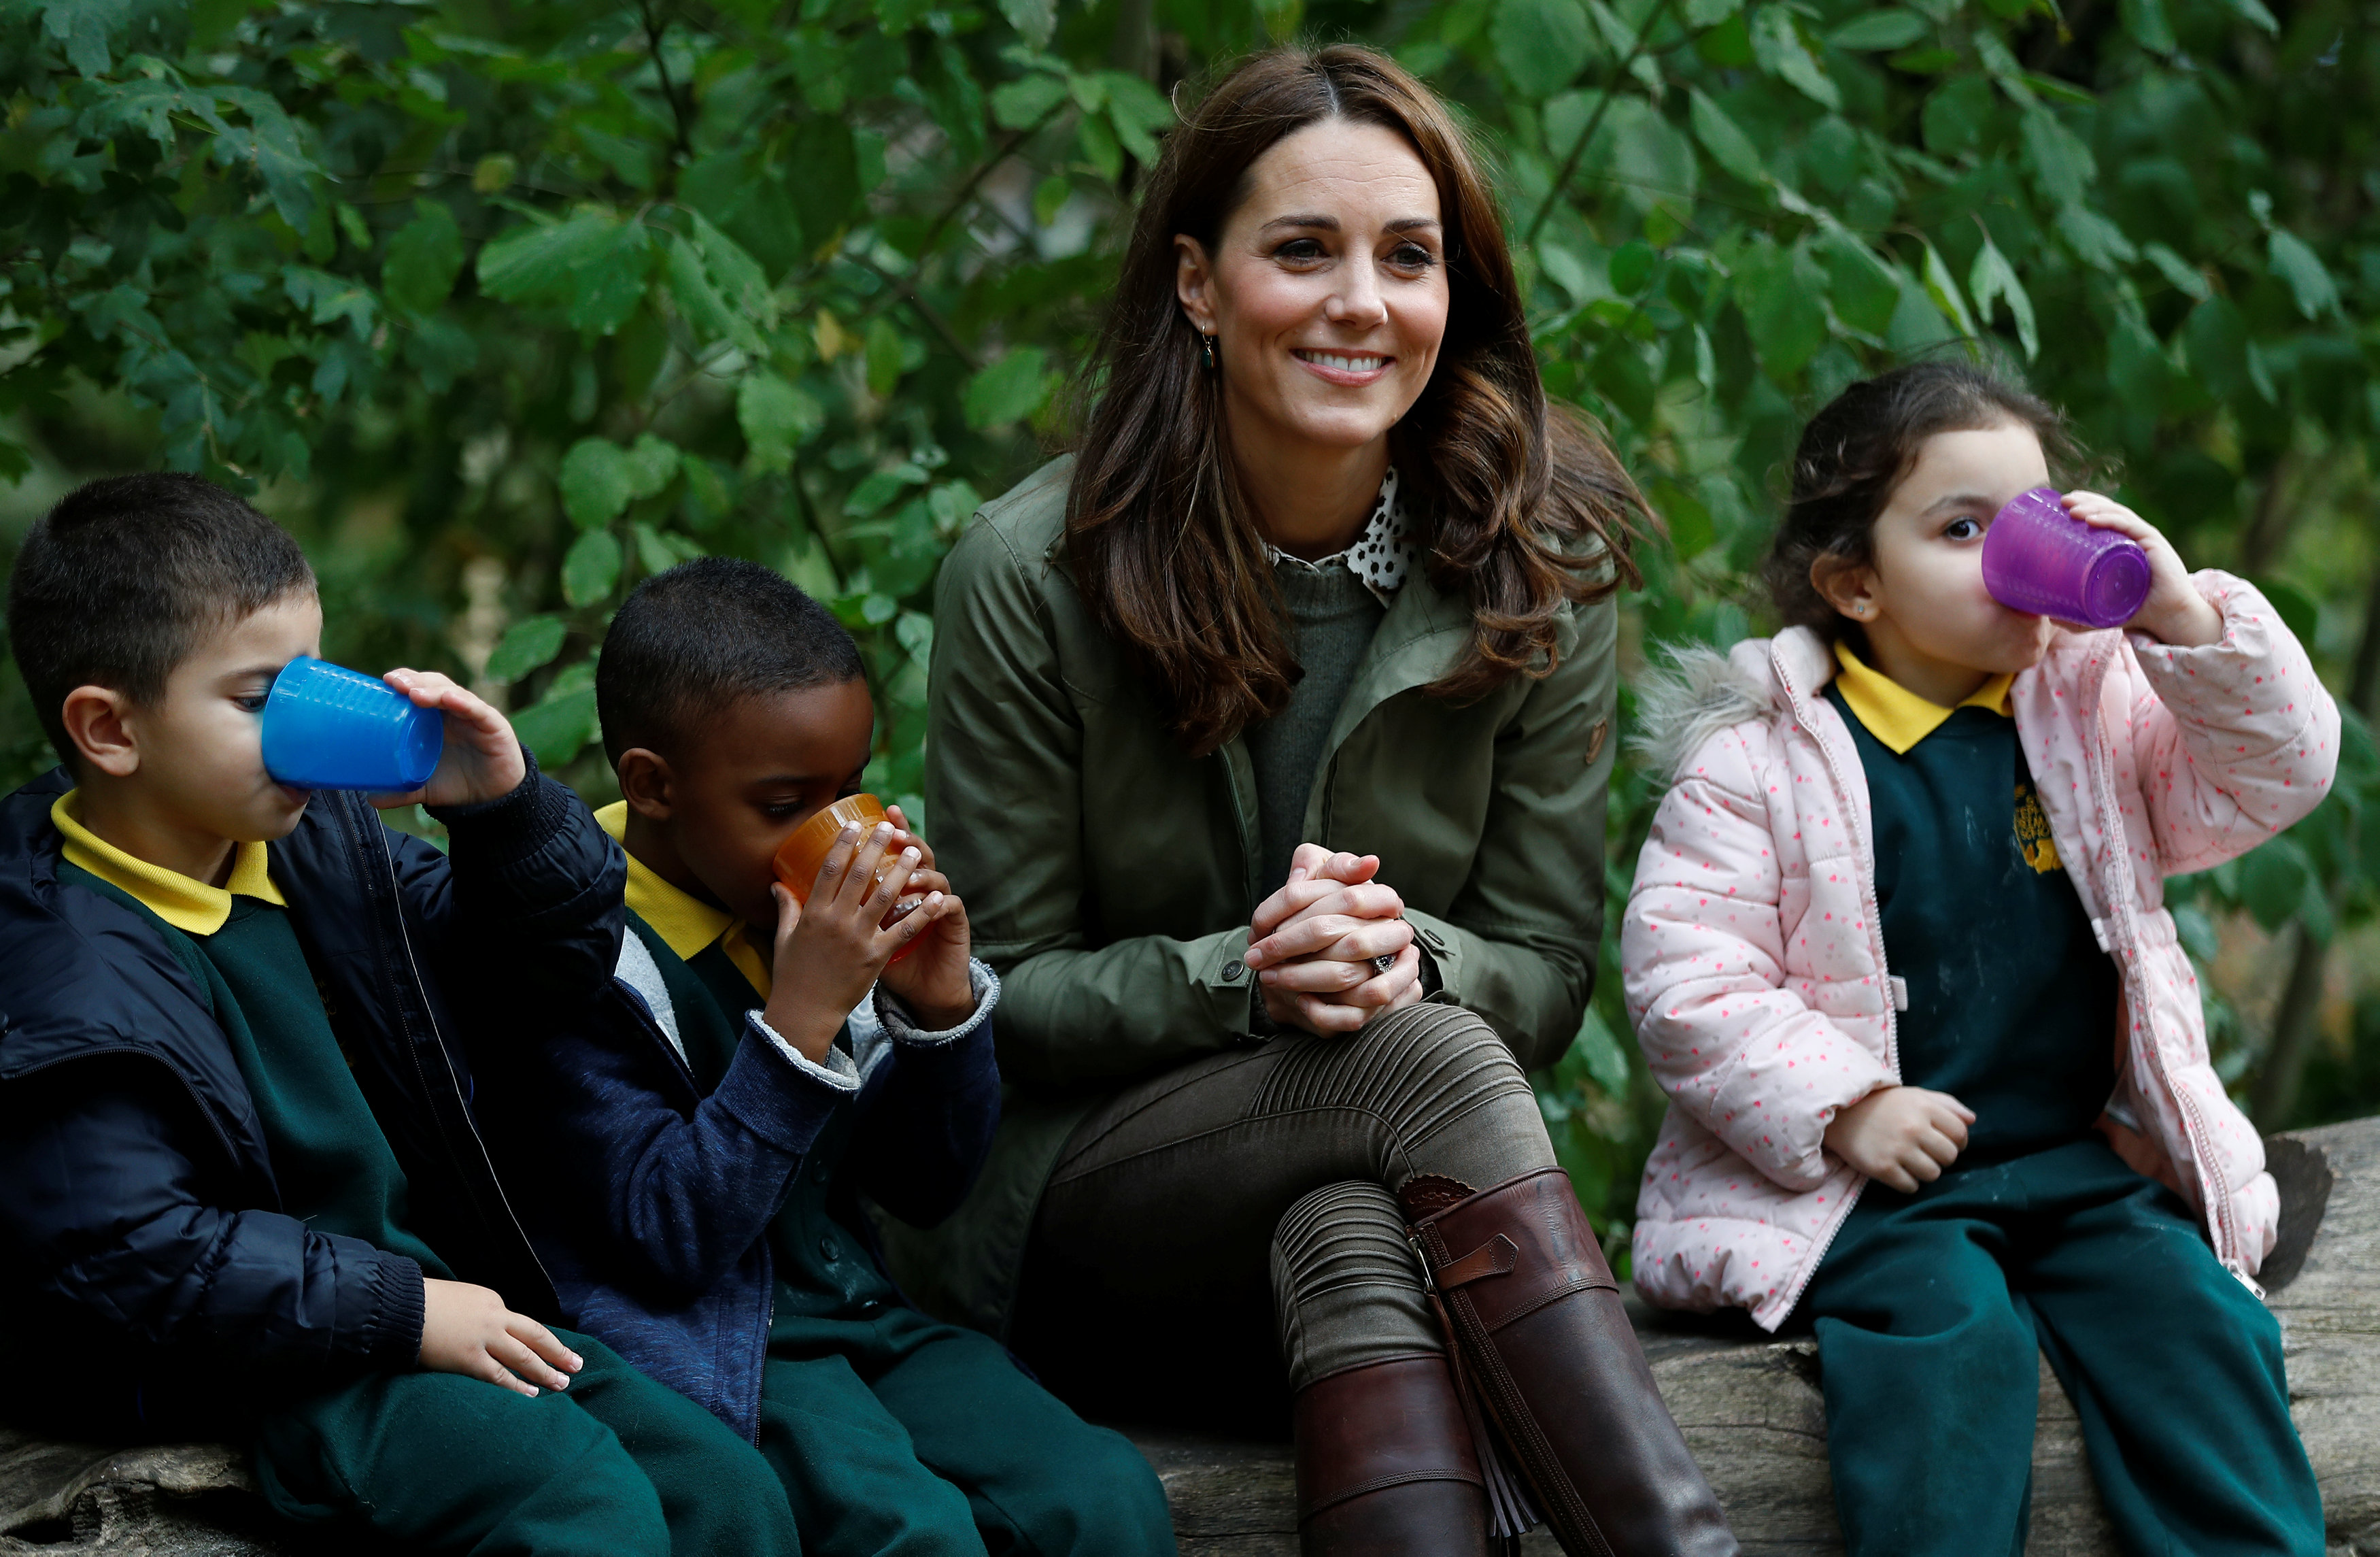 Britain's Duchess Kate makes first solo outing after birth of third child